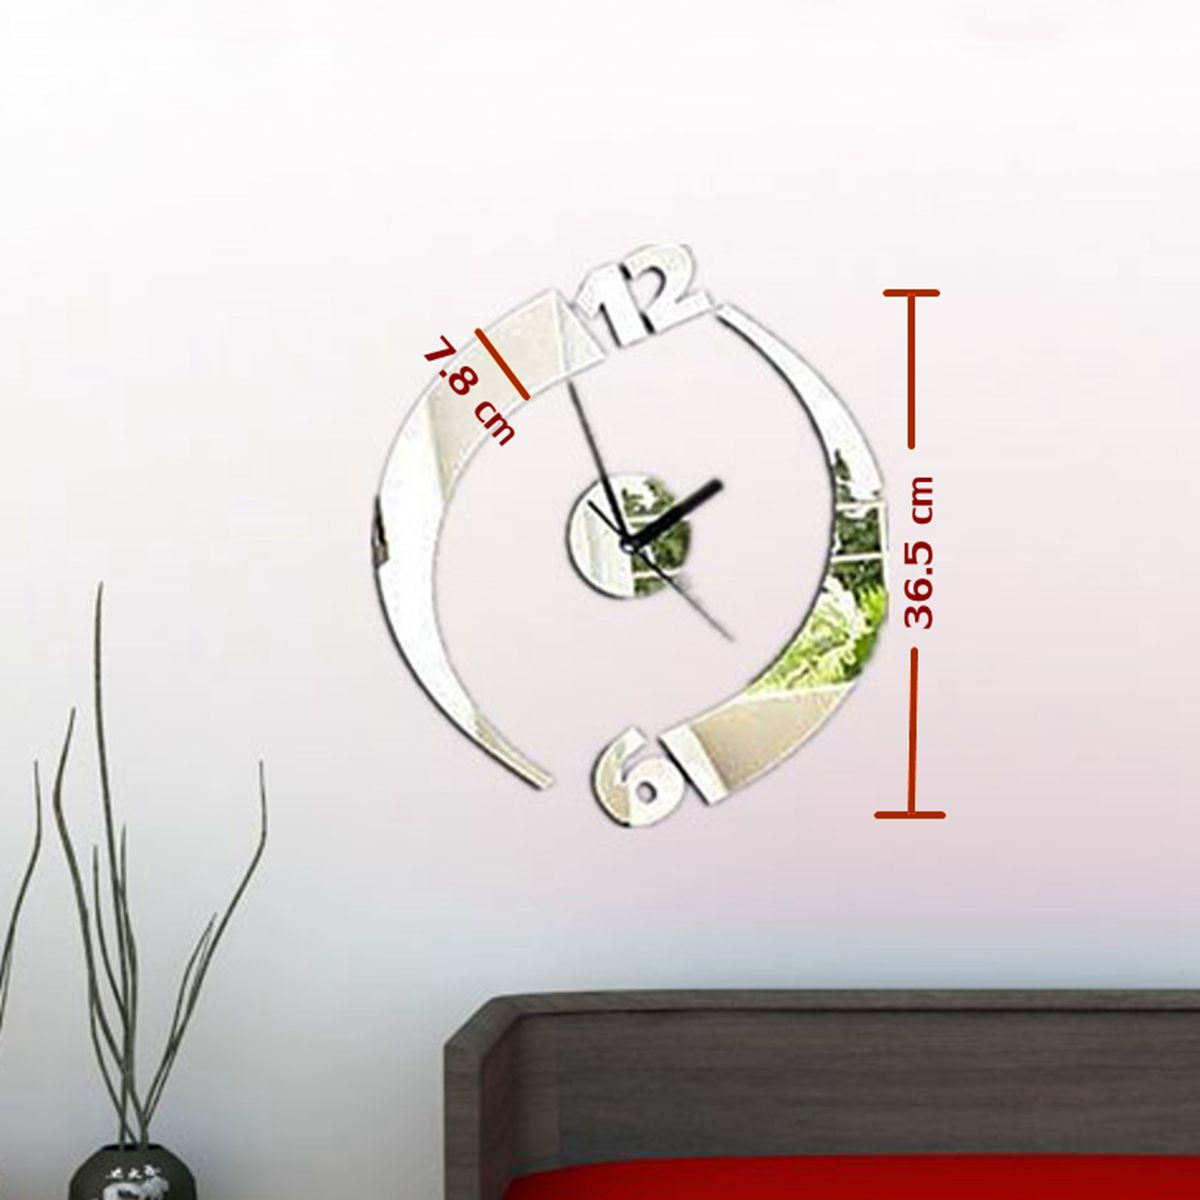 Modern Art Decor Wall Clock Sticker : Modern acrylic mirror surface diy large wall clock sticker